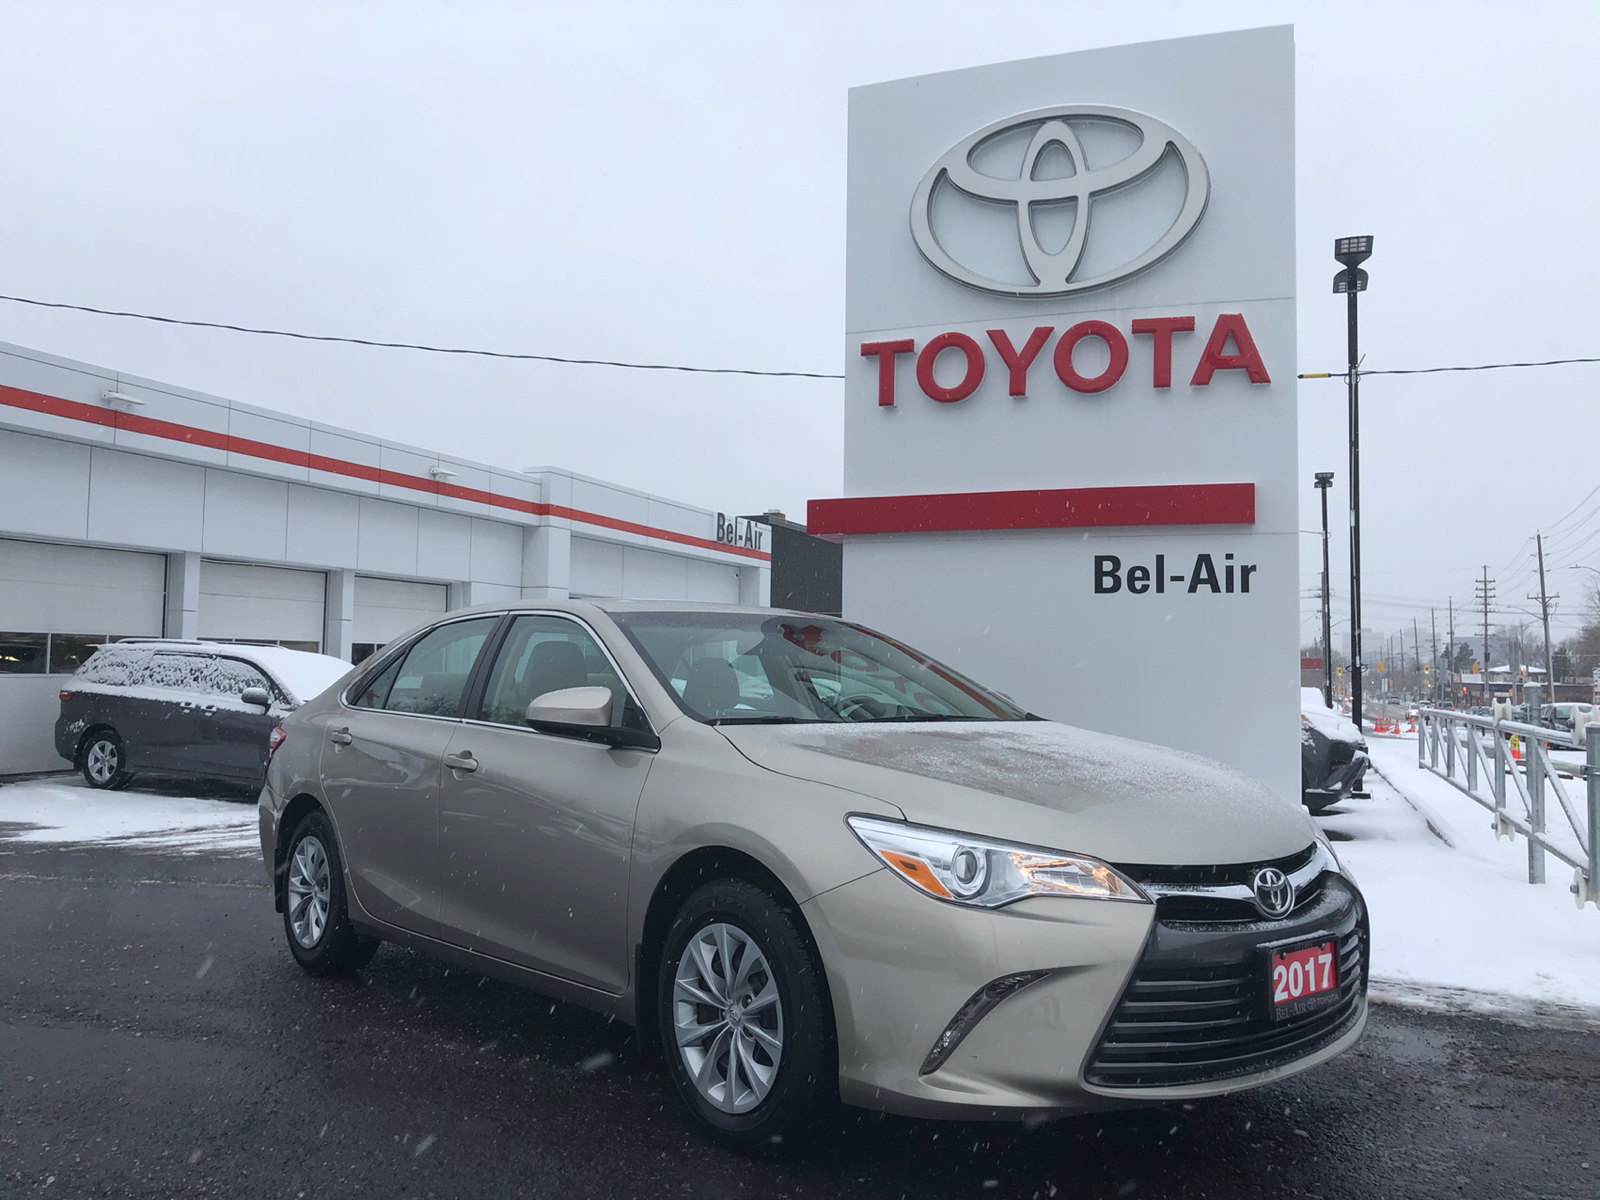 2017 Toyota Camry at Bel-Air Toyota